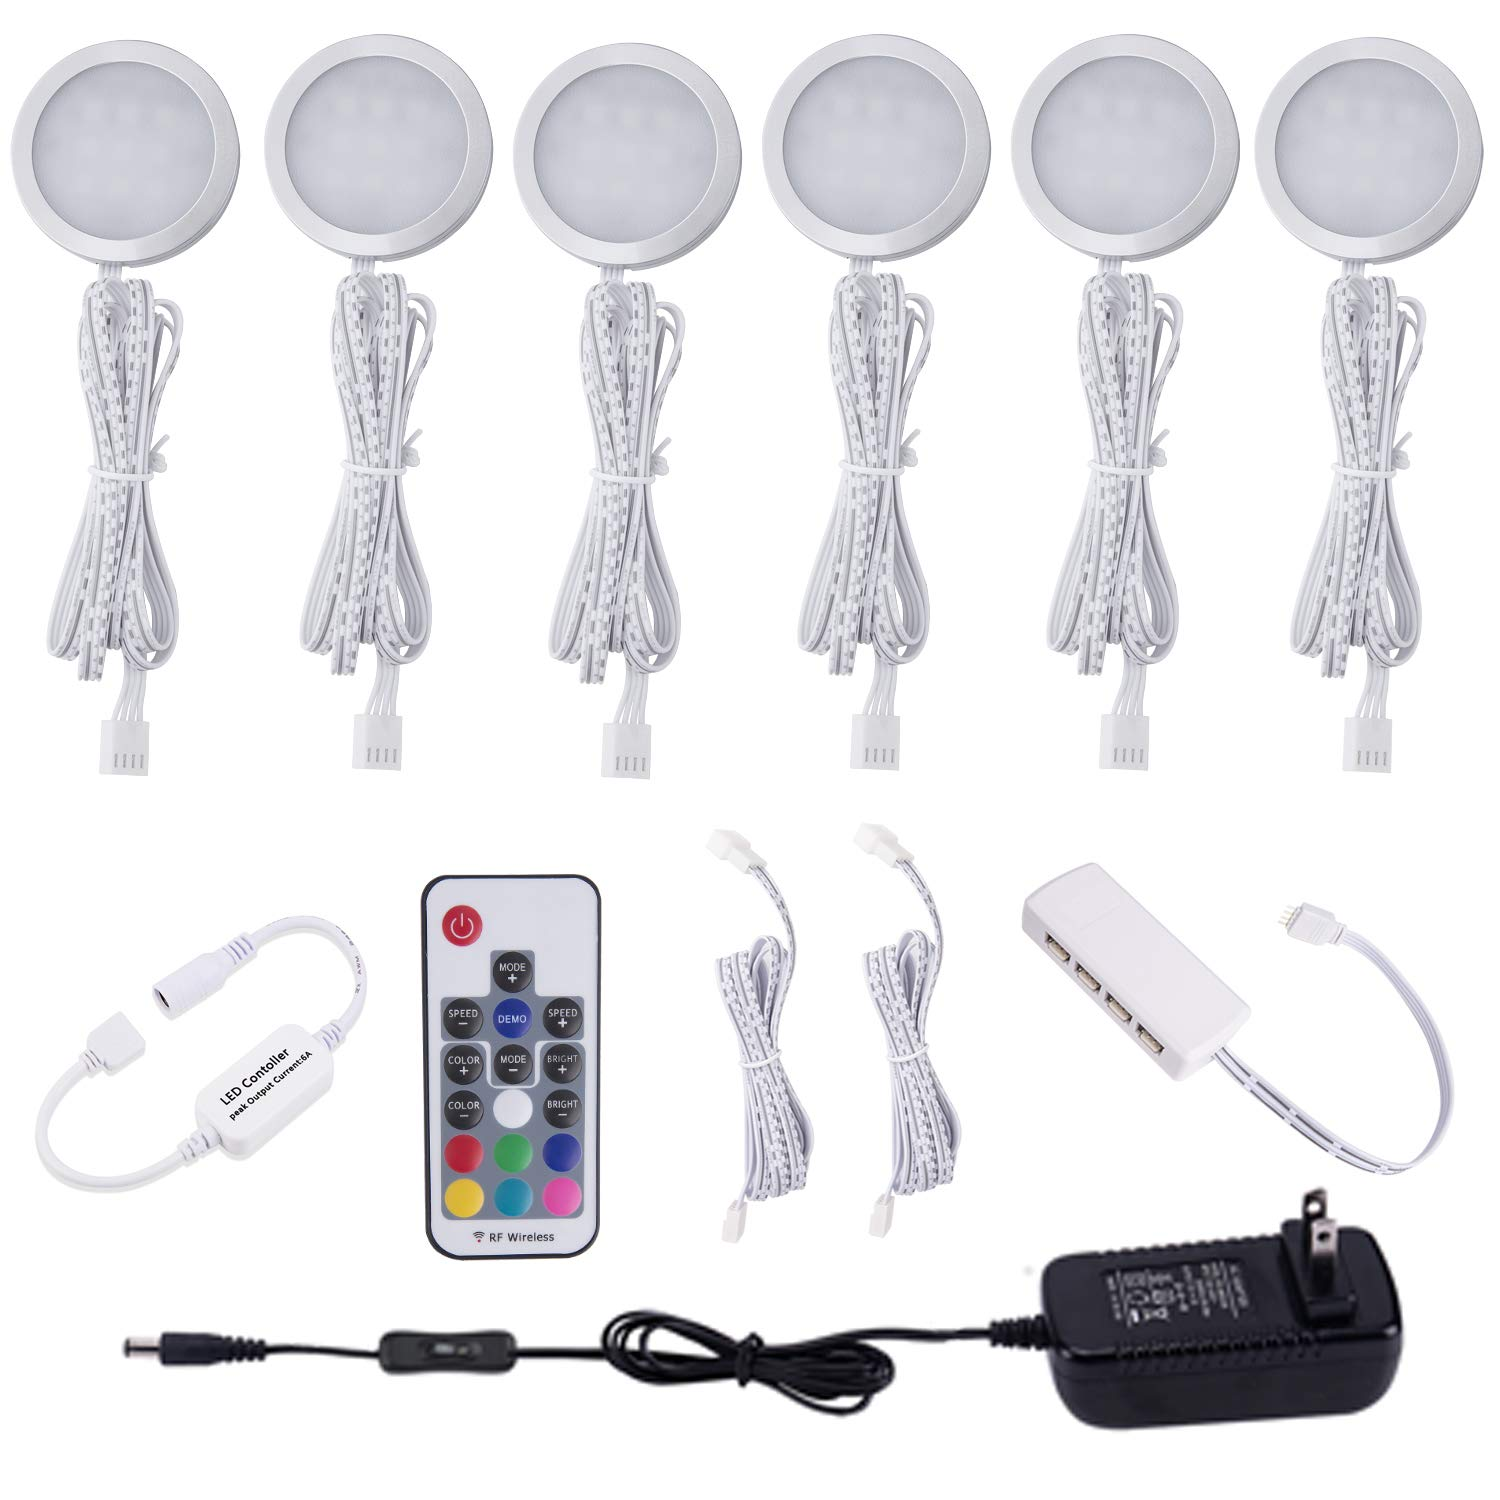 Aiboo RGB Color Changing LED Under Cabinet Lights Kit Aluminum Slim Puck Lamps for Kitchen Counter Wardrobe Counter Furniture Ambiance Christmas Decor Lighting (6 lights)